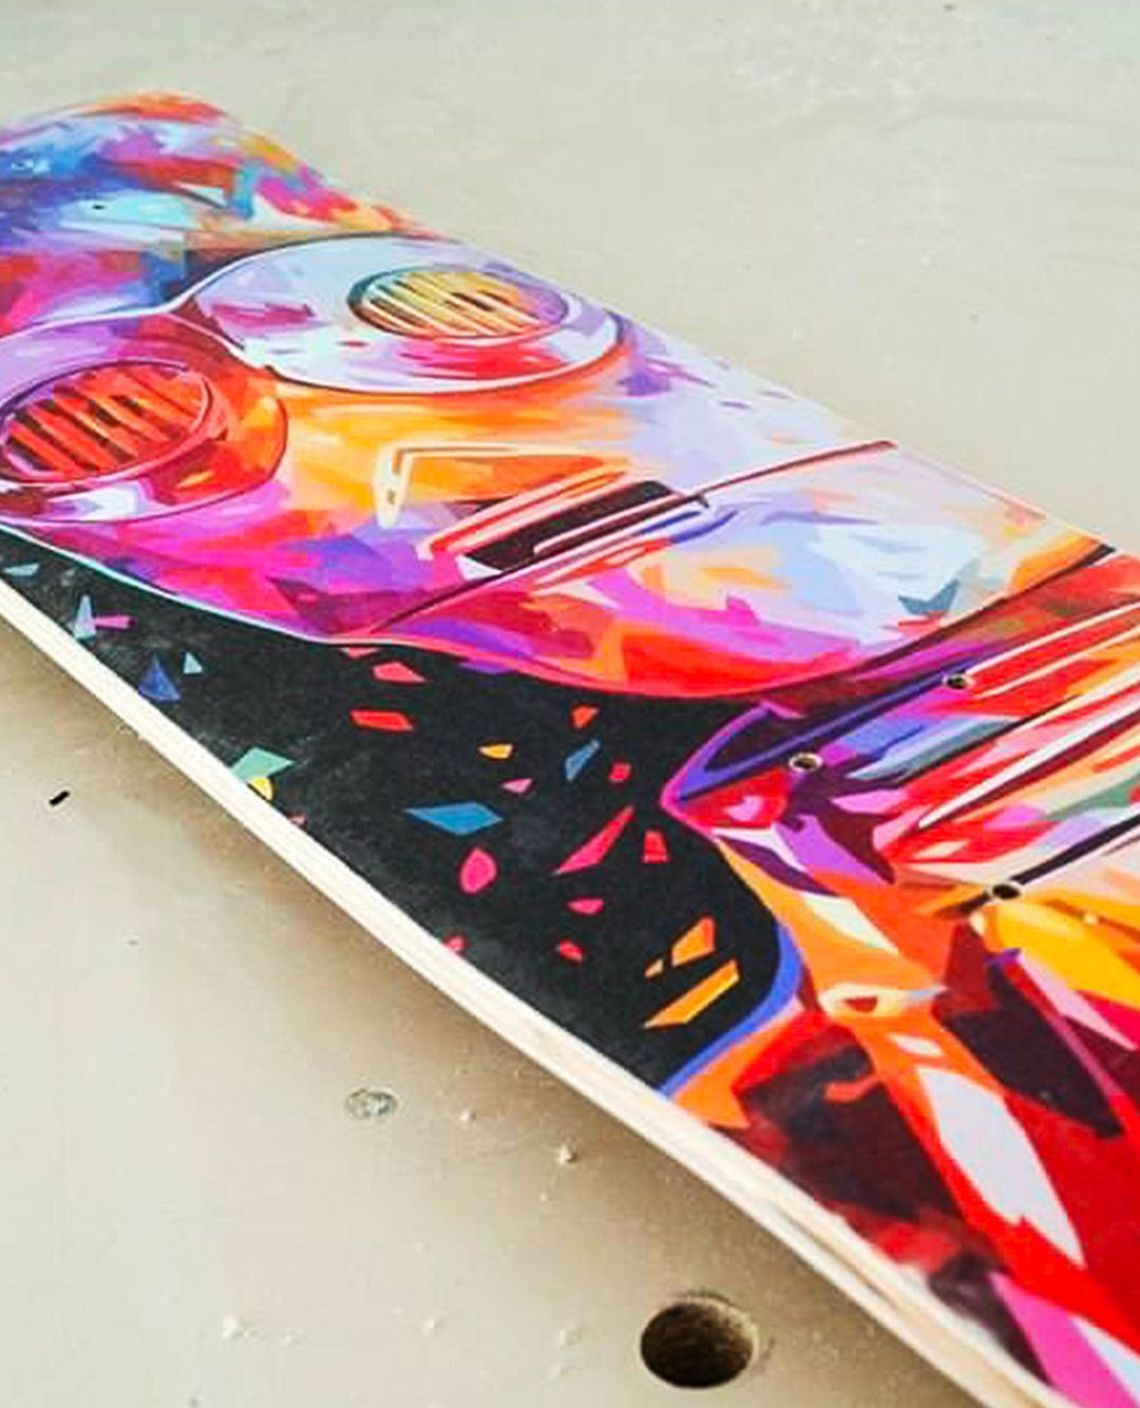 Droid Father Soldier Skateboards By Kaneda X Bonobolabo 4